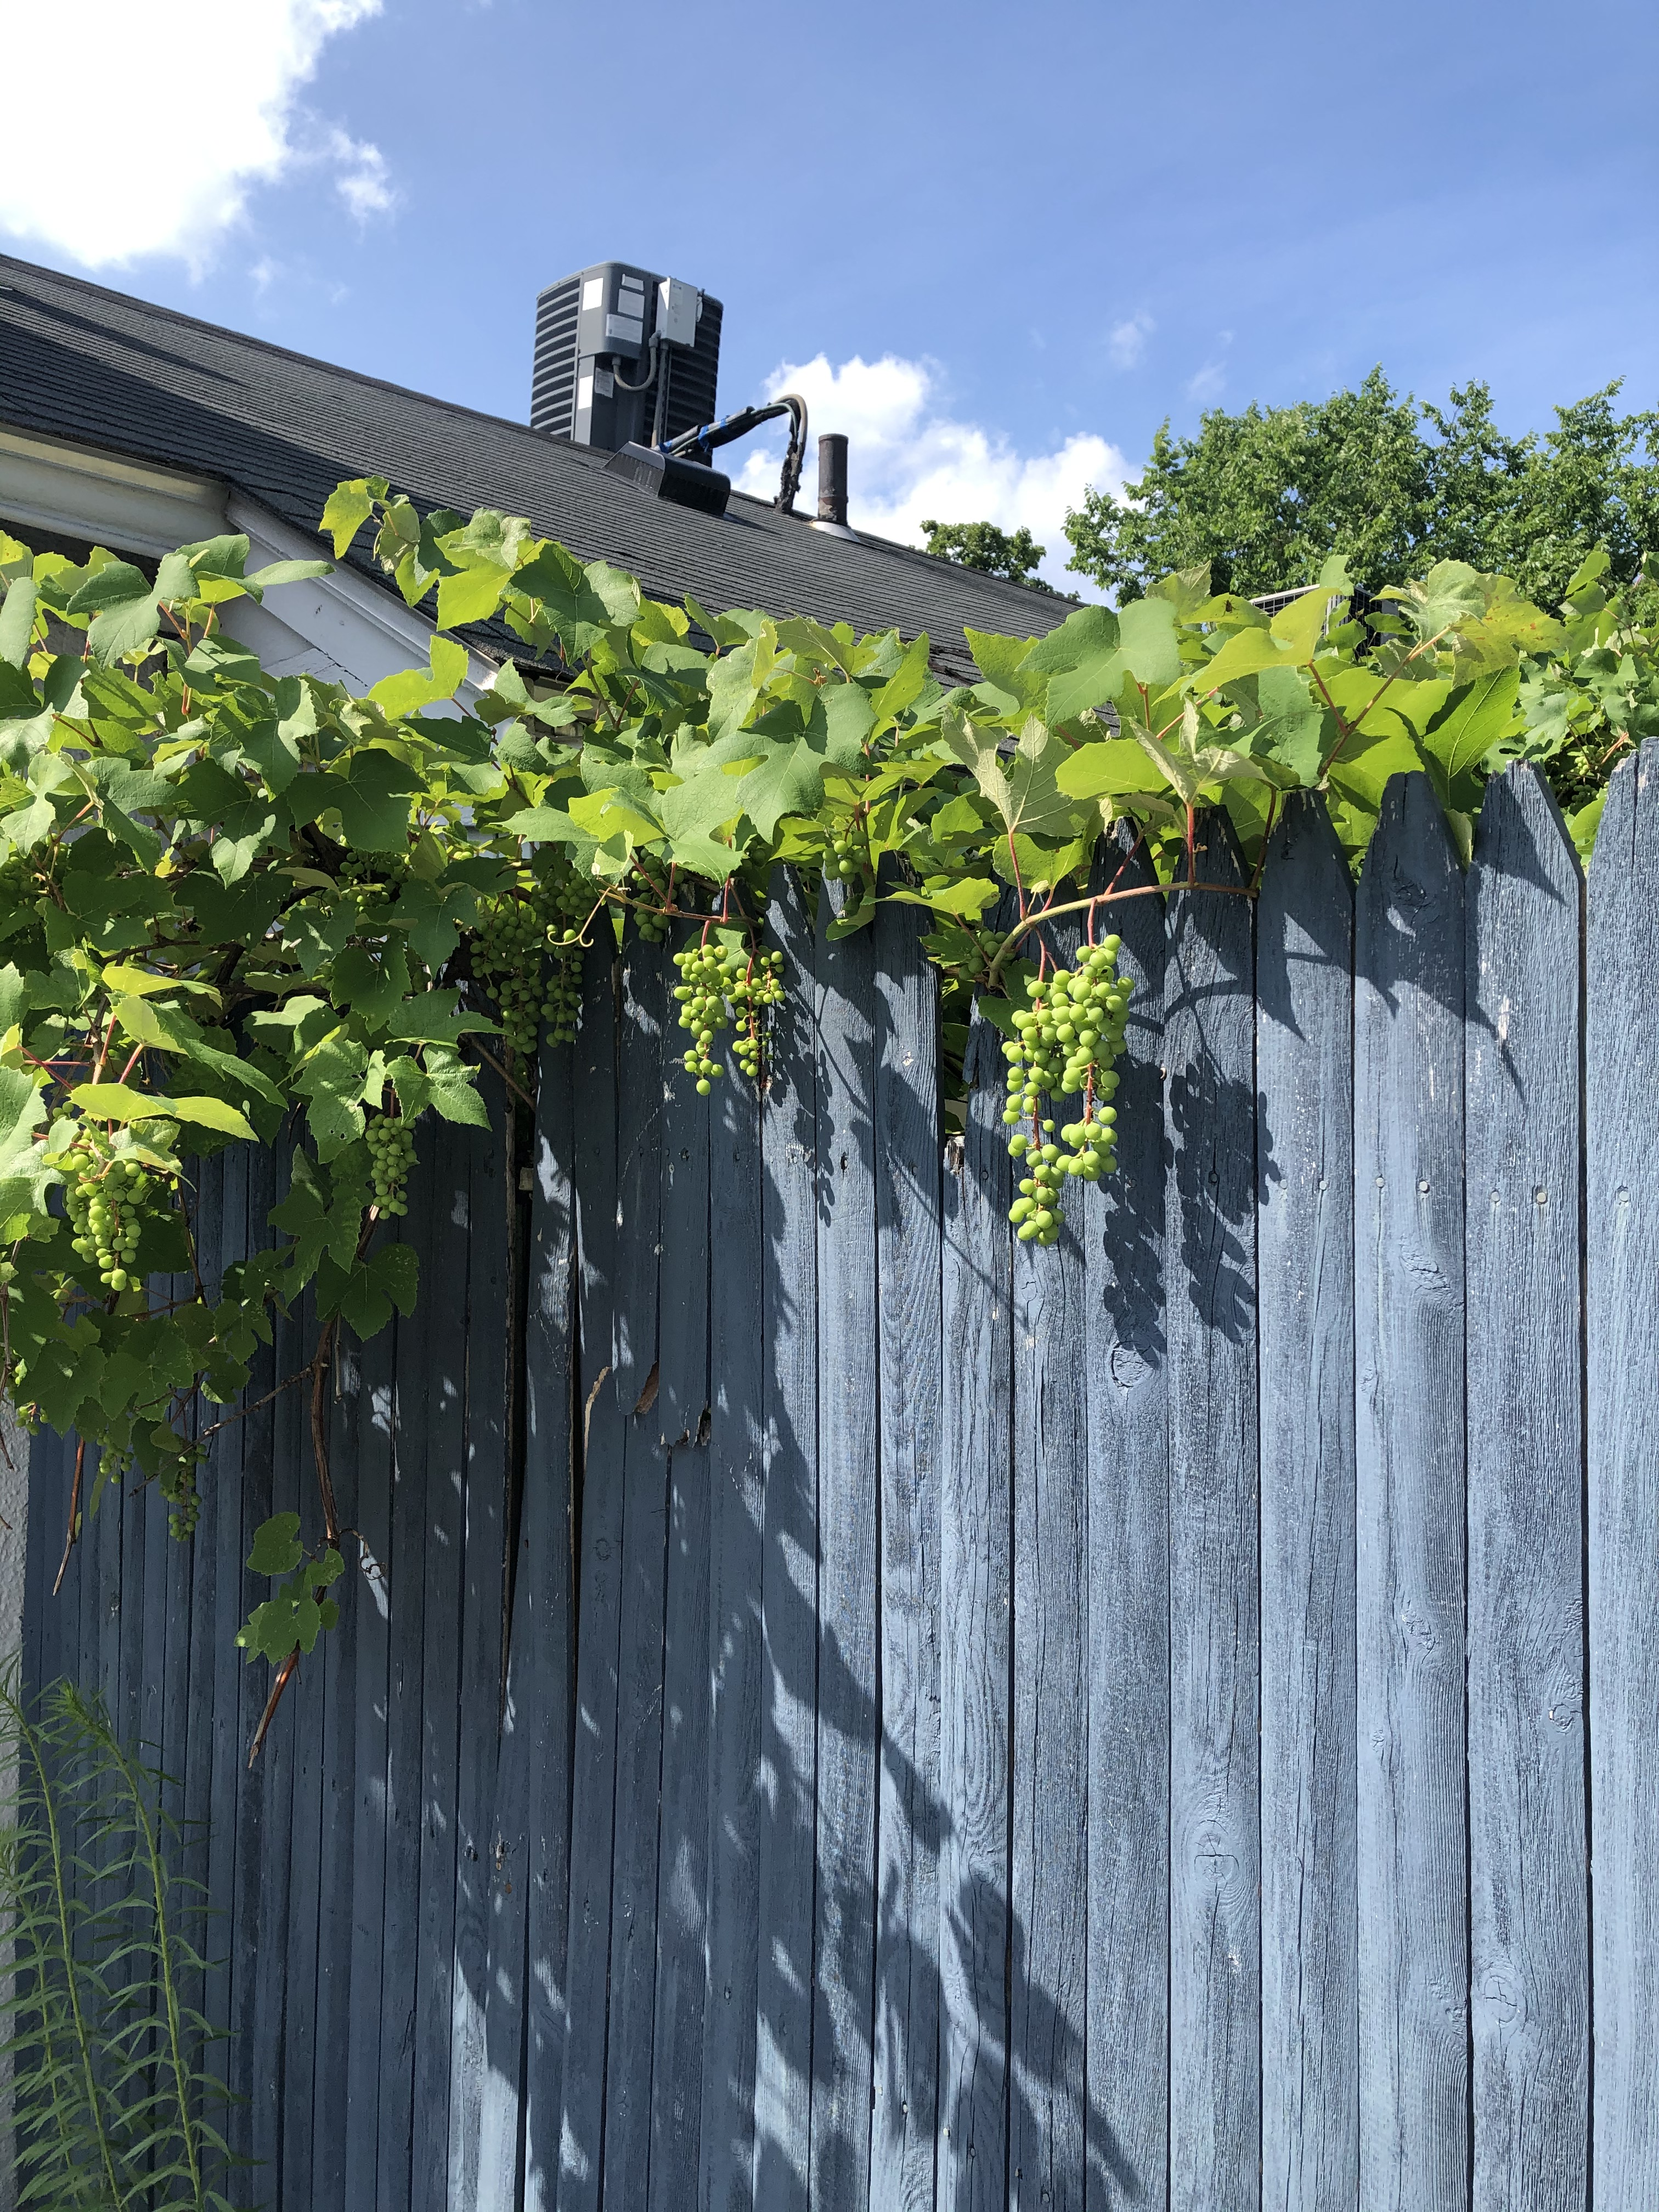 070920-grapes-on-gray-fence